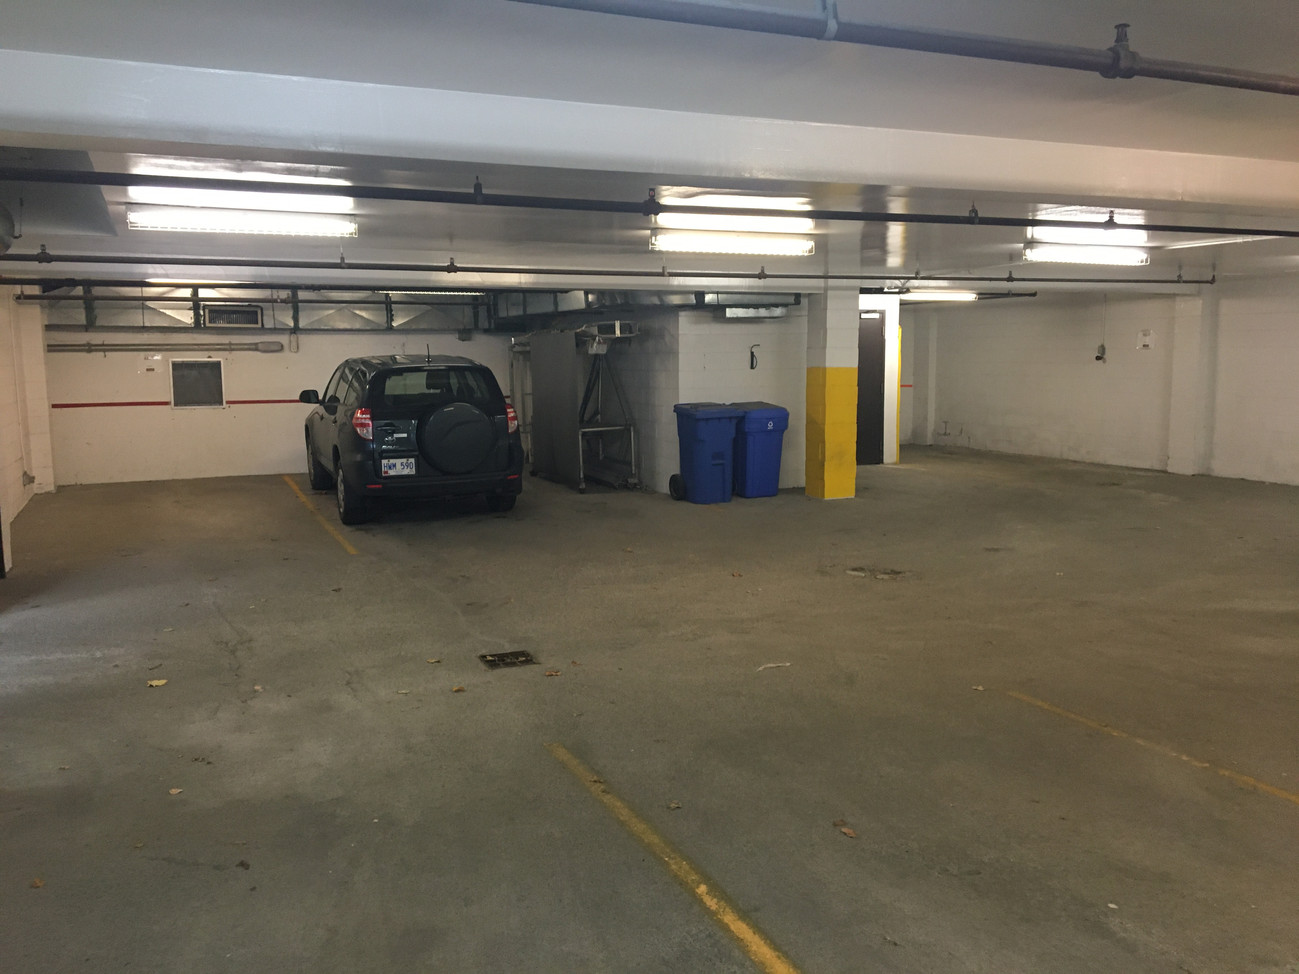 Interior Parking Spaces